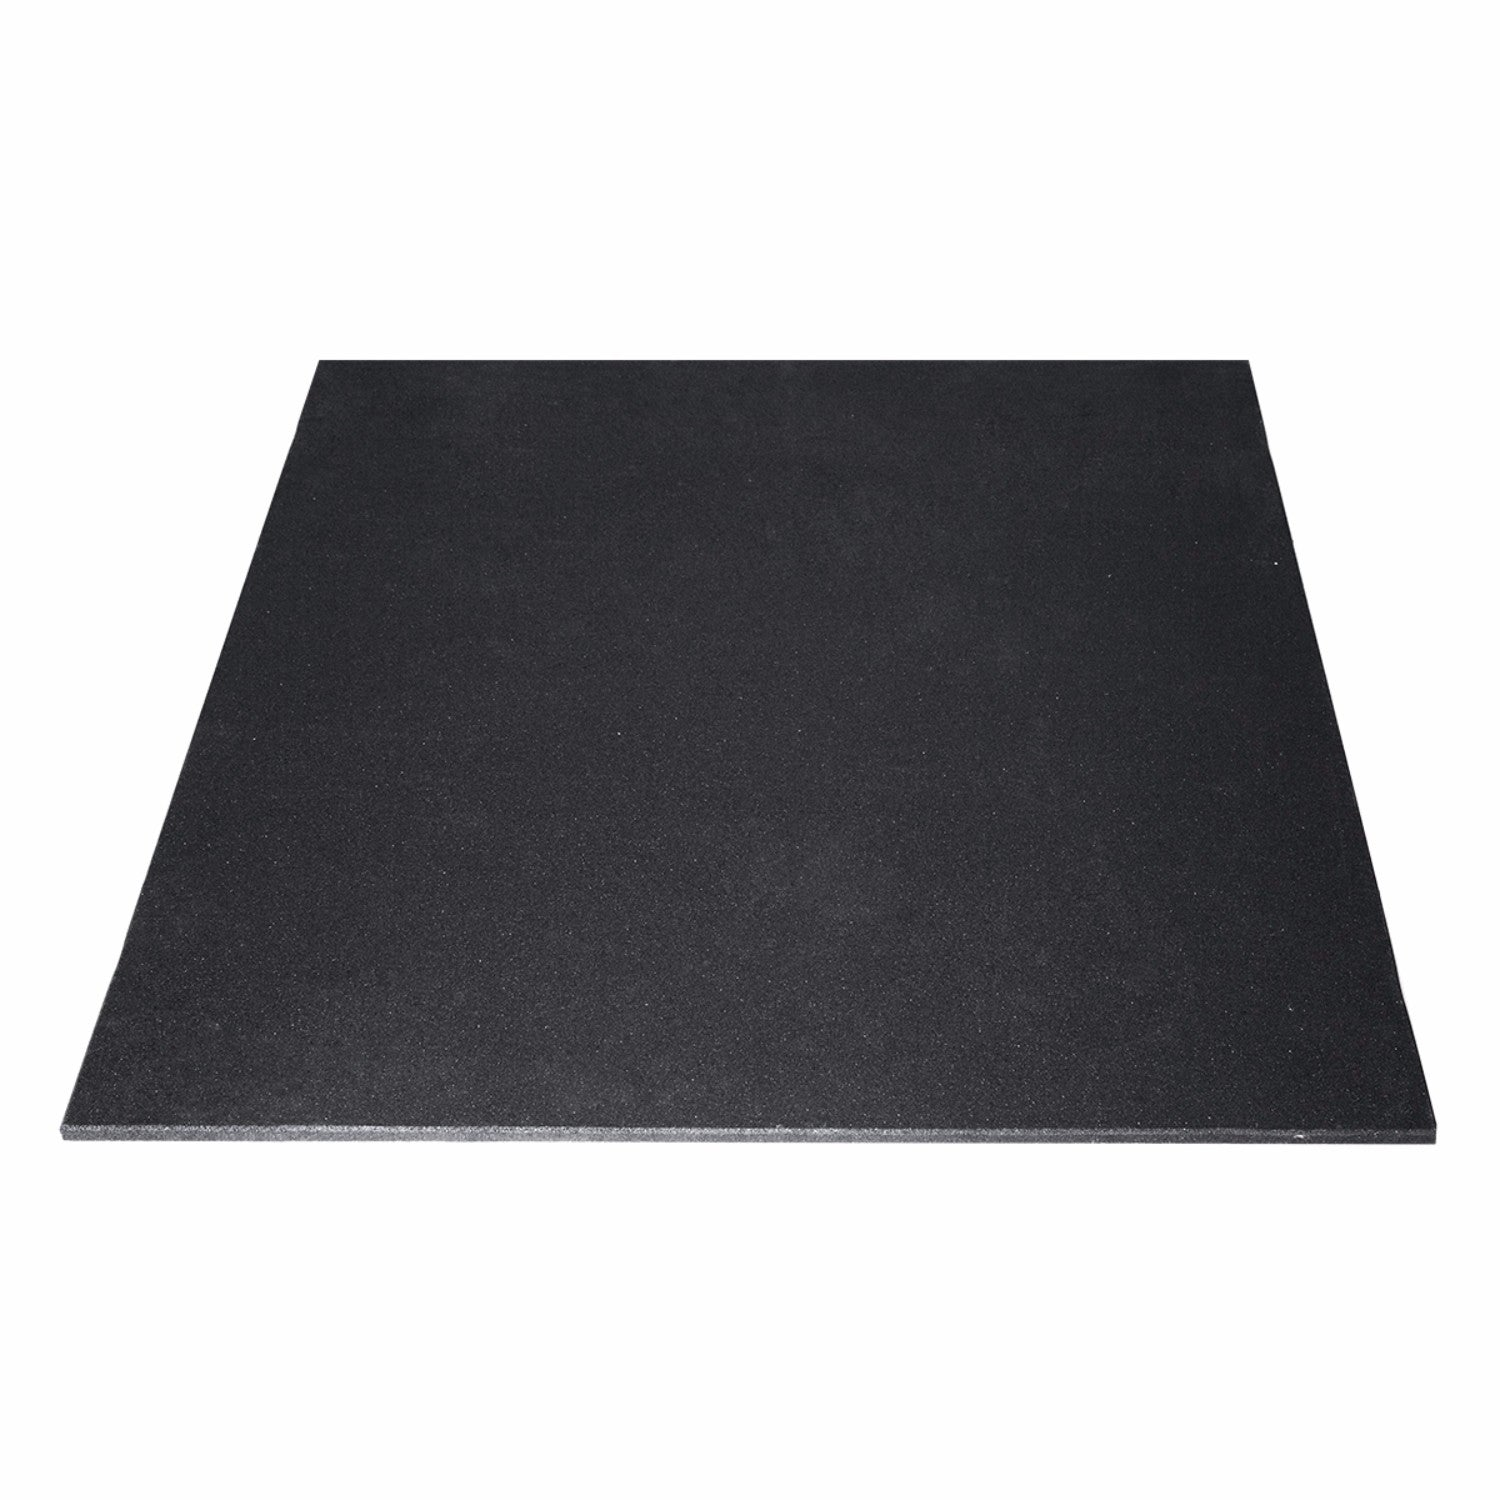 Rubber Gym Floor Mat 1m*1m*15mm